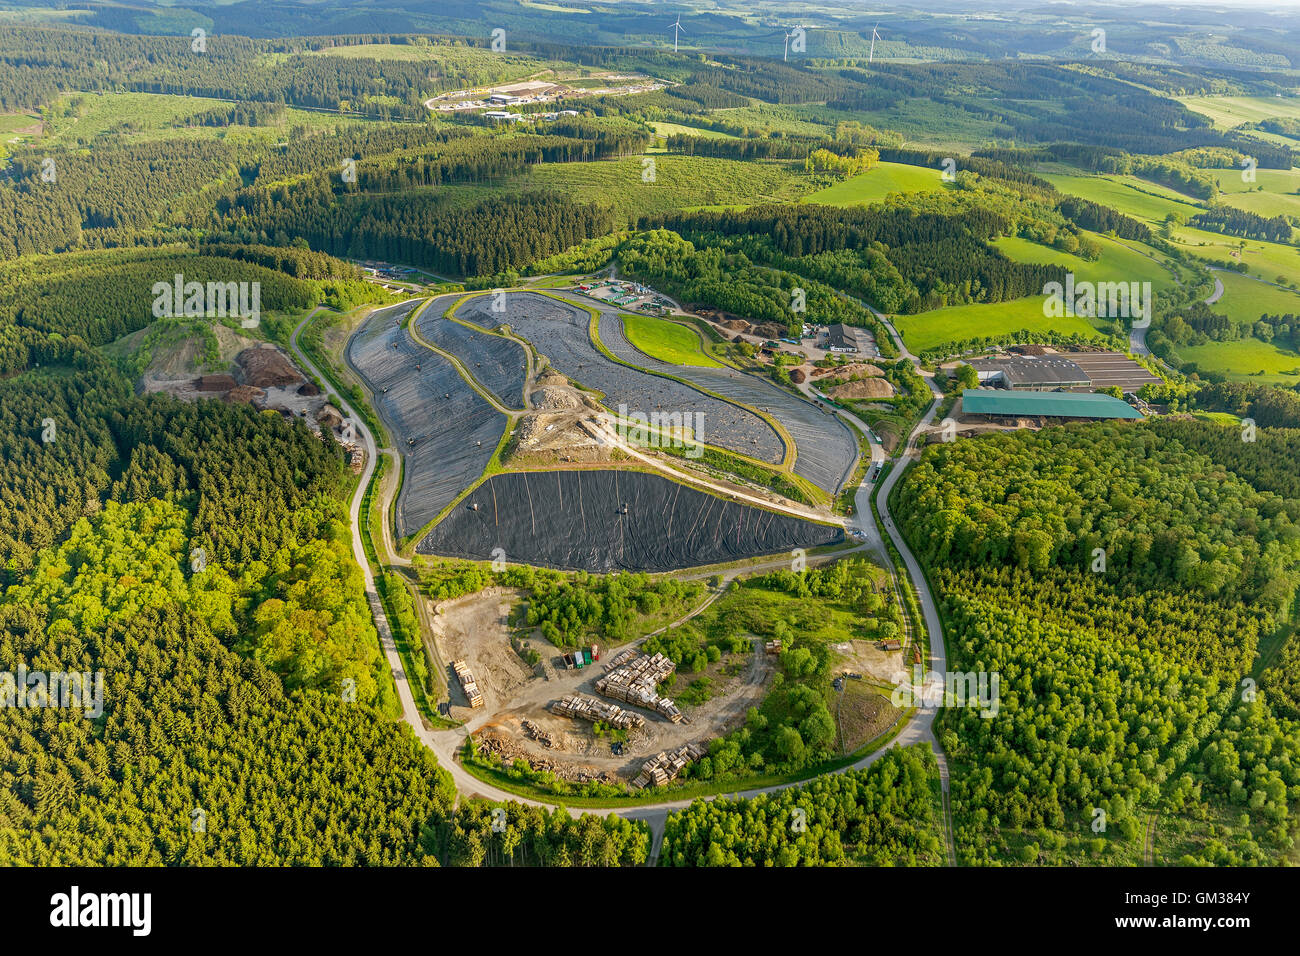 Aerial view, county landfill Olpe, landfill, waste dump, recycling, Aerial view of Olpe, north rhine-westphalia, - Stock Image